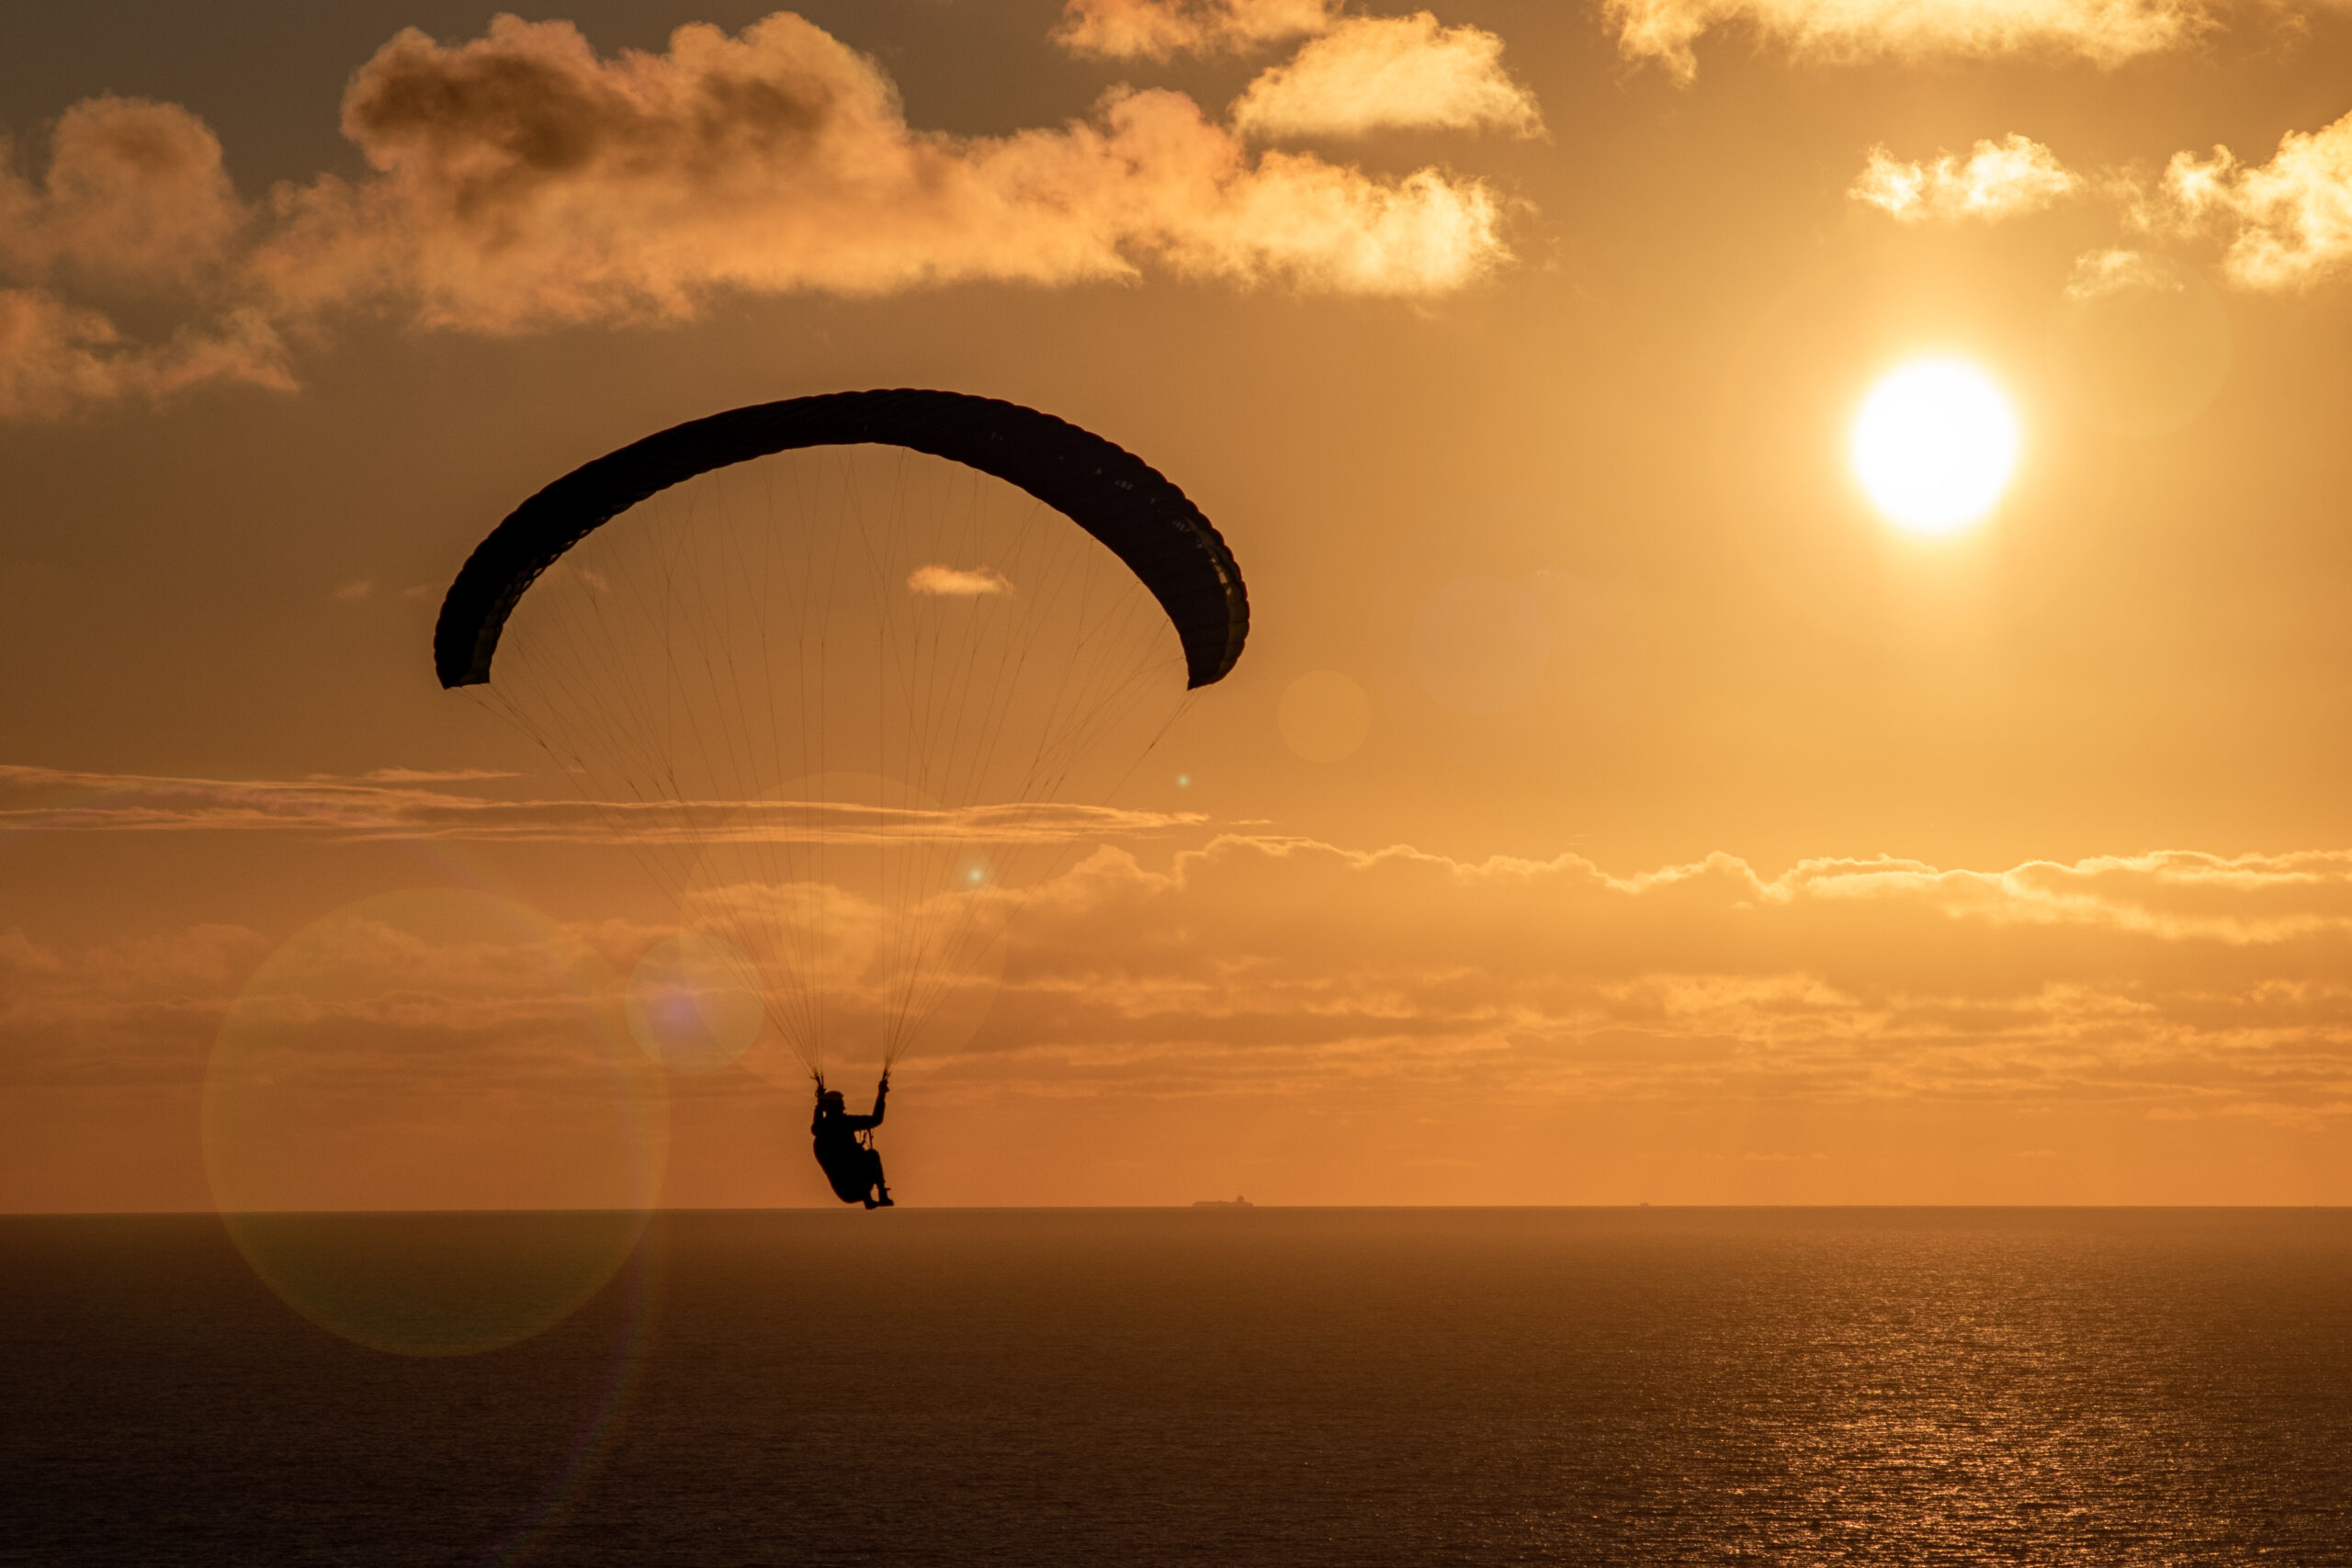 Paraglider in the sunset